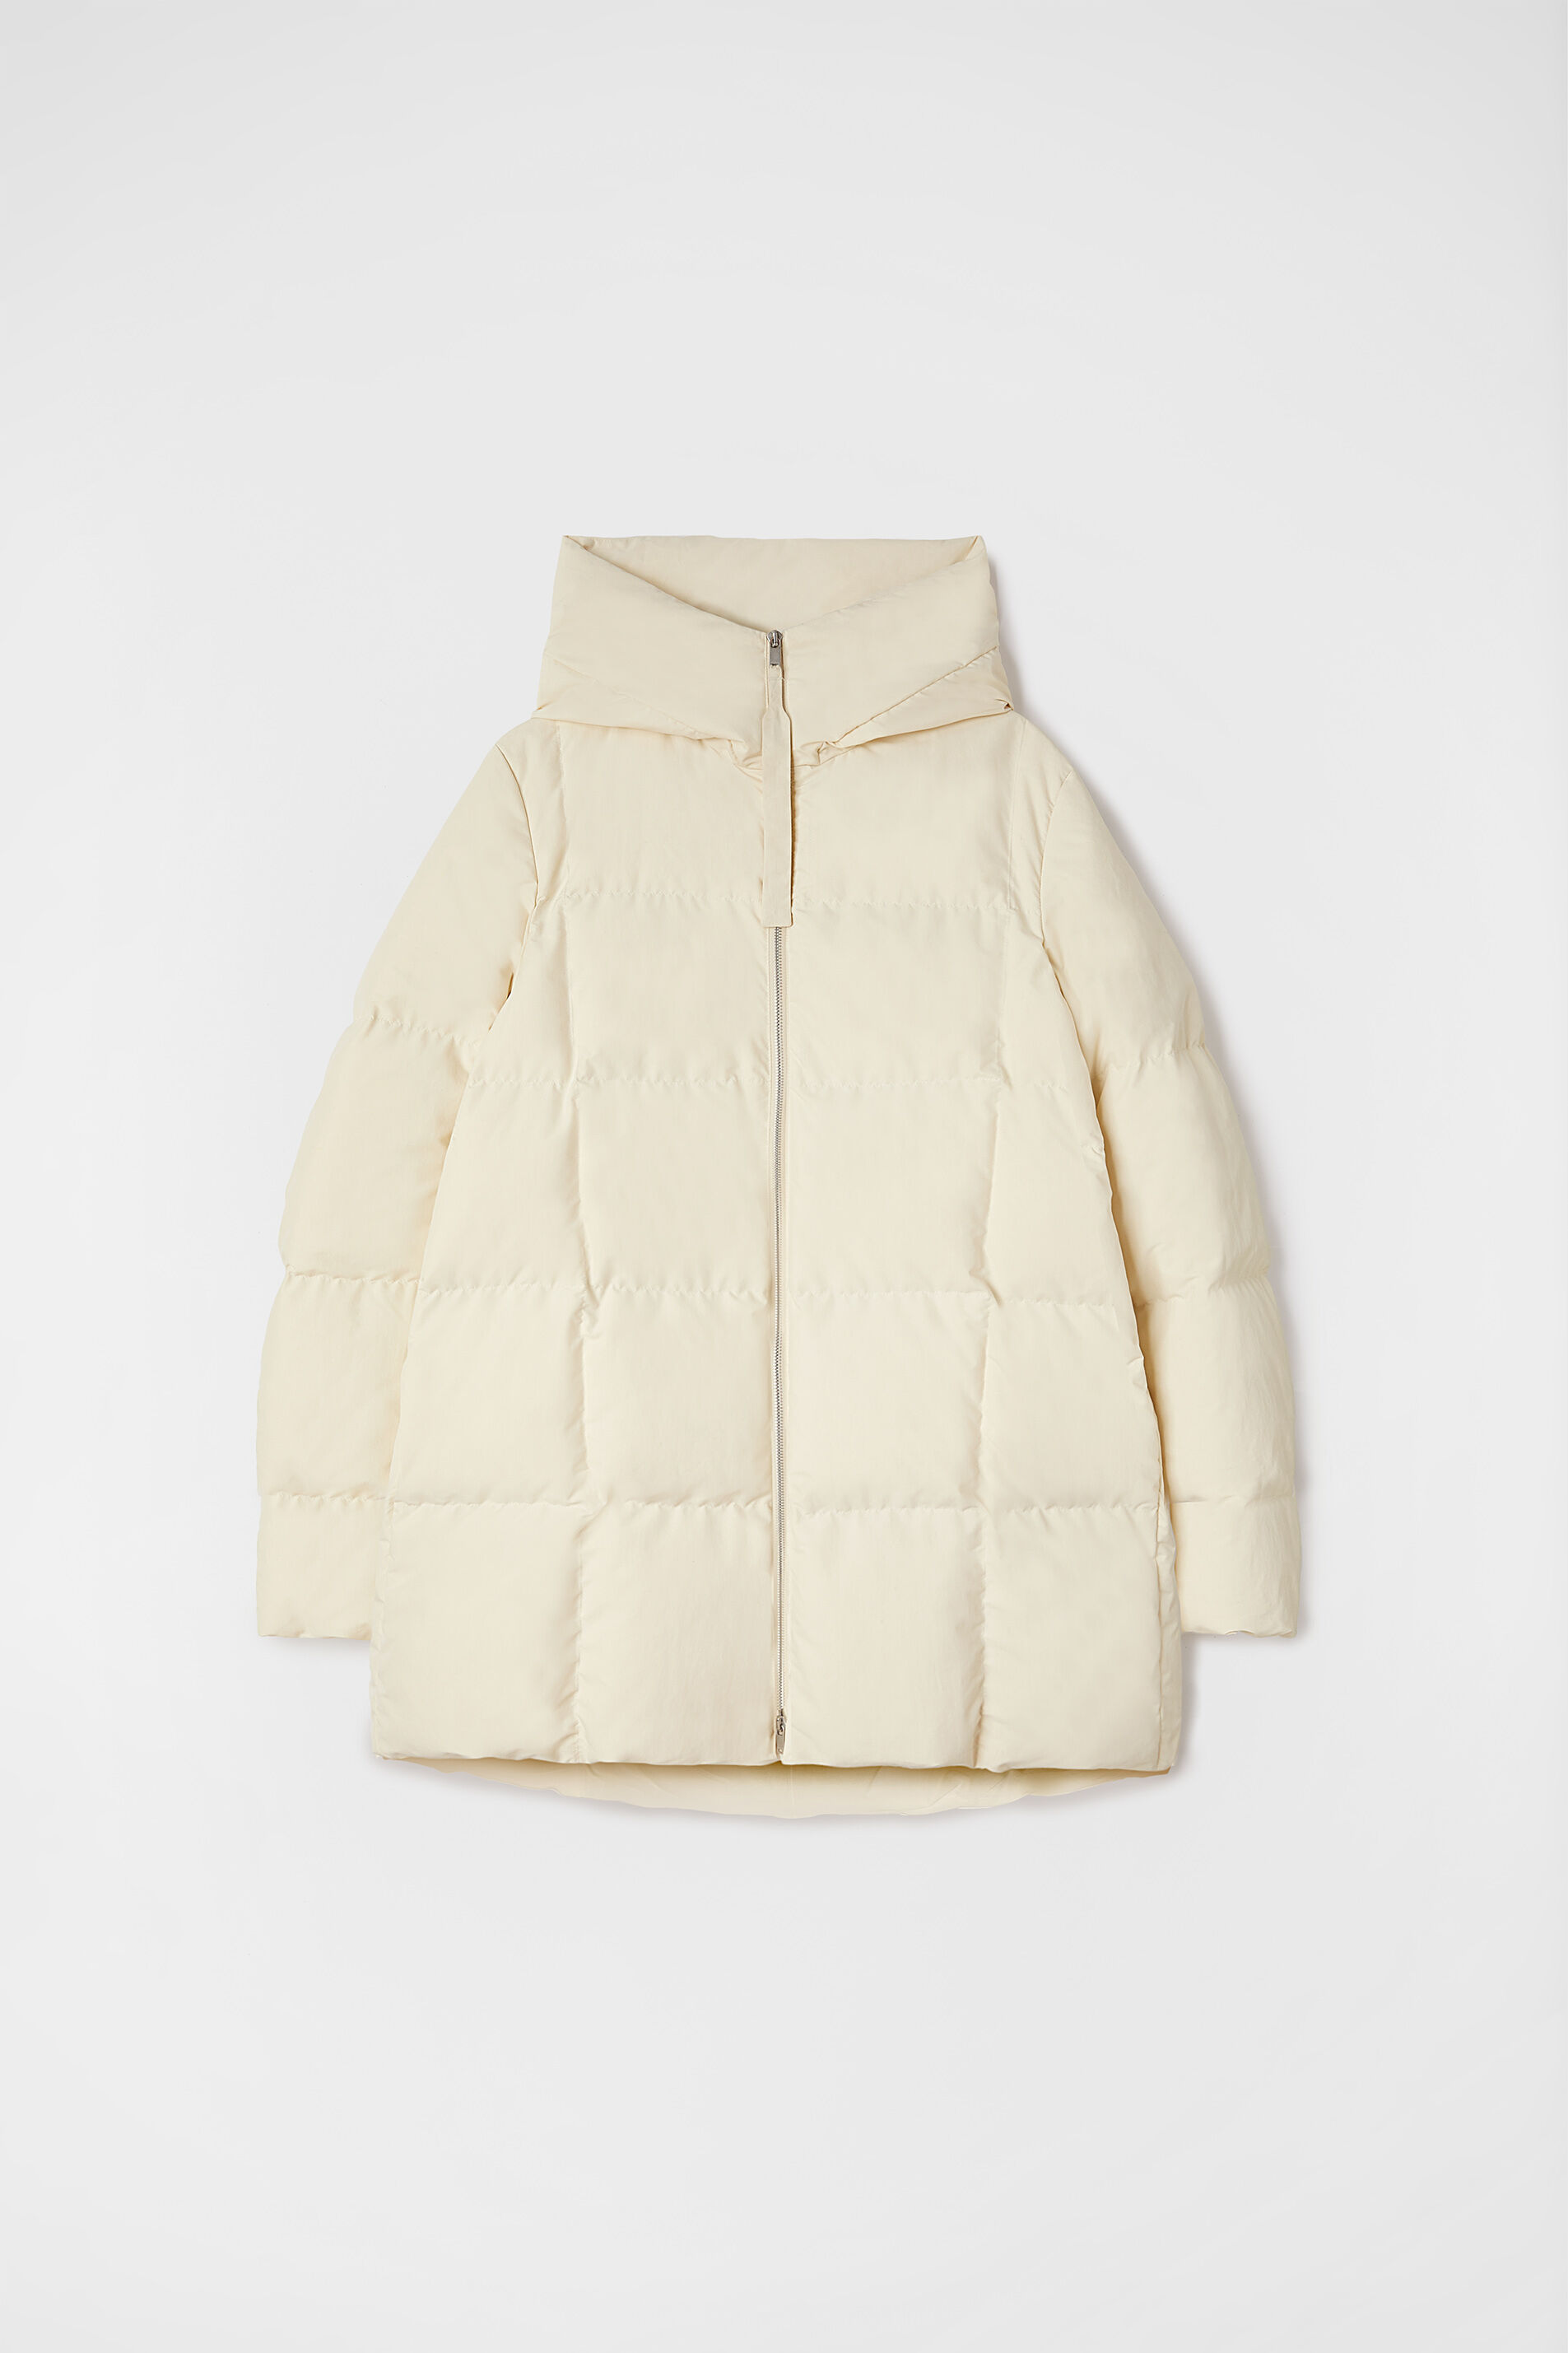 Quilted Down Jacket, beige, large